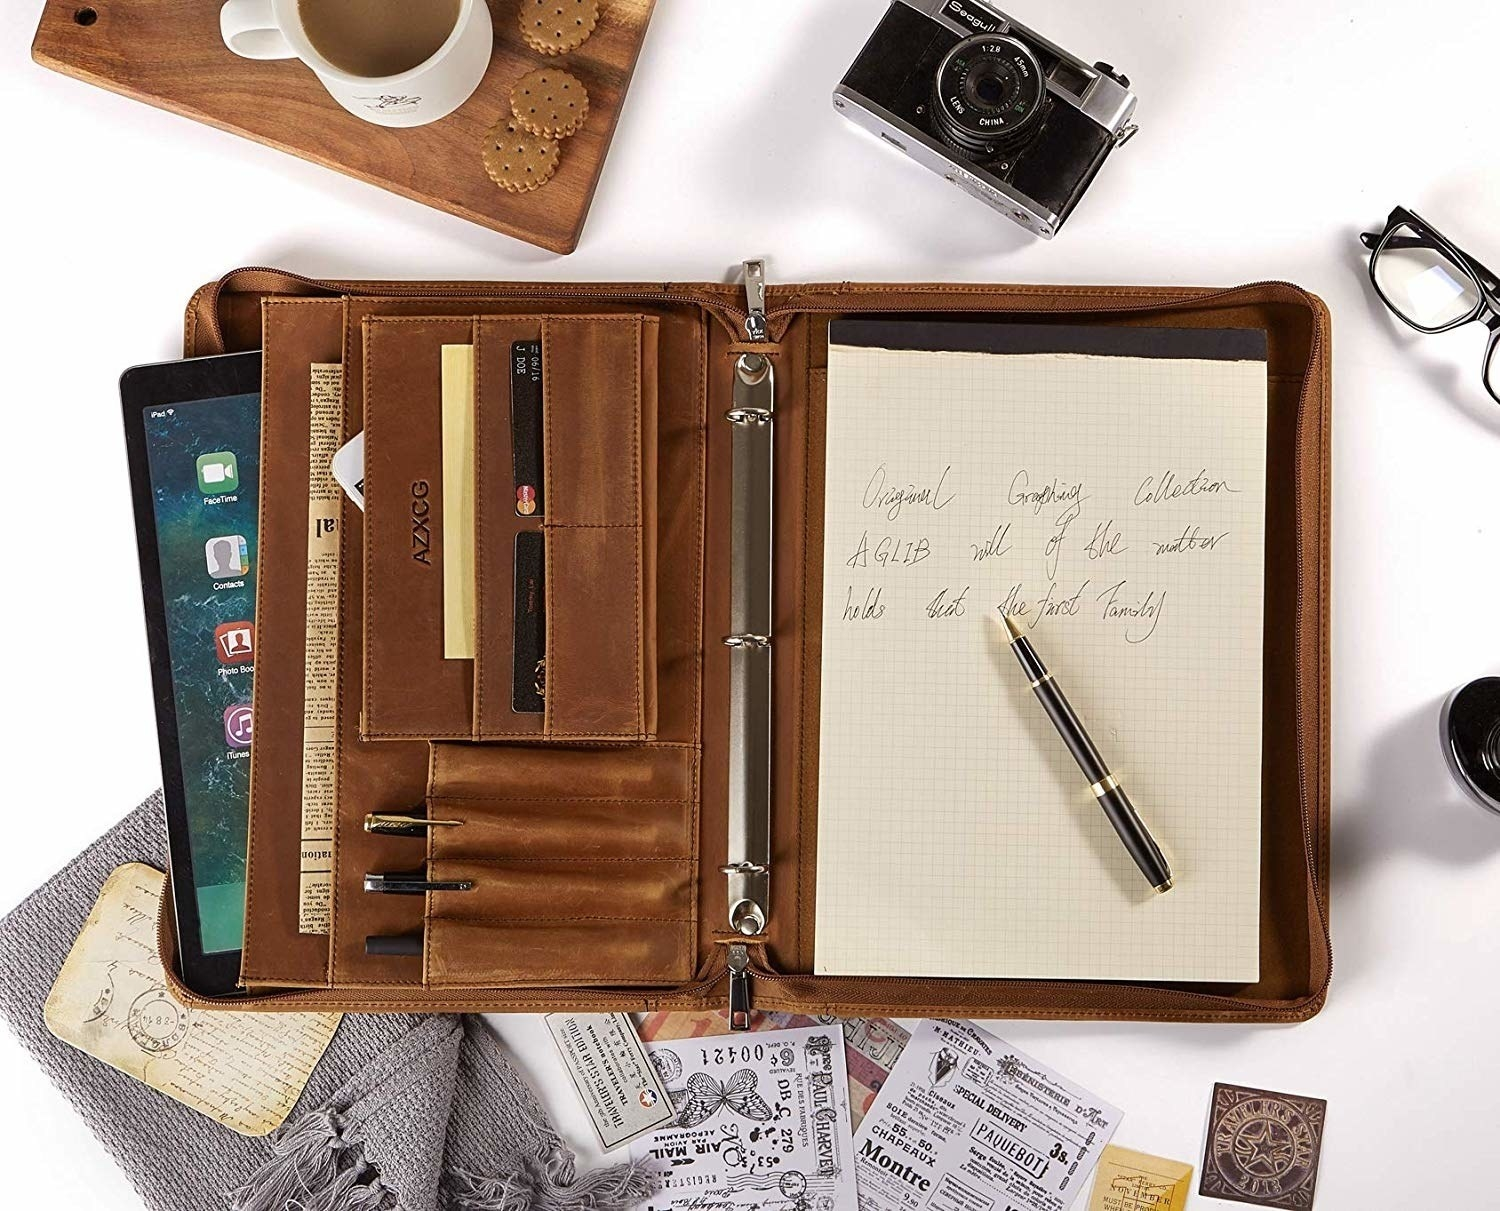 The portfolio has pockets, pen holders, card slots, and a three-ring binder